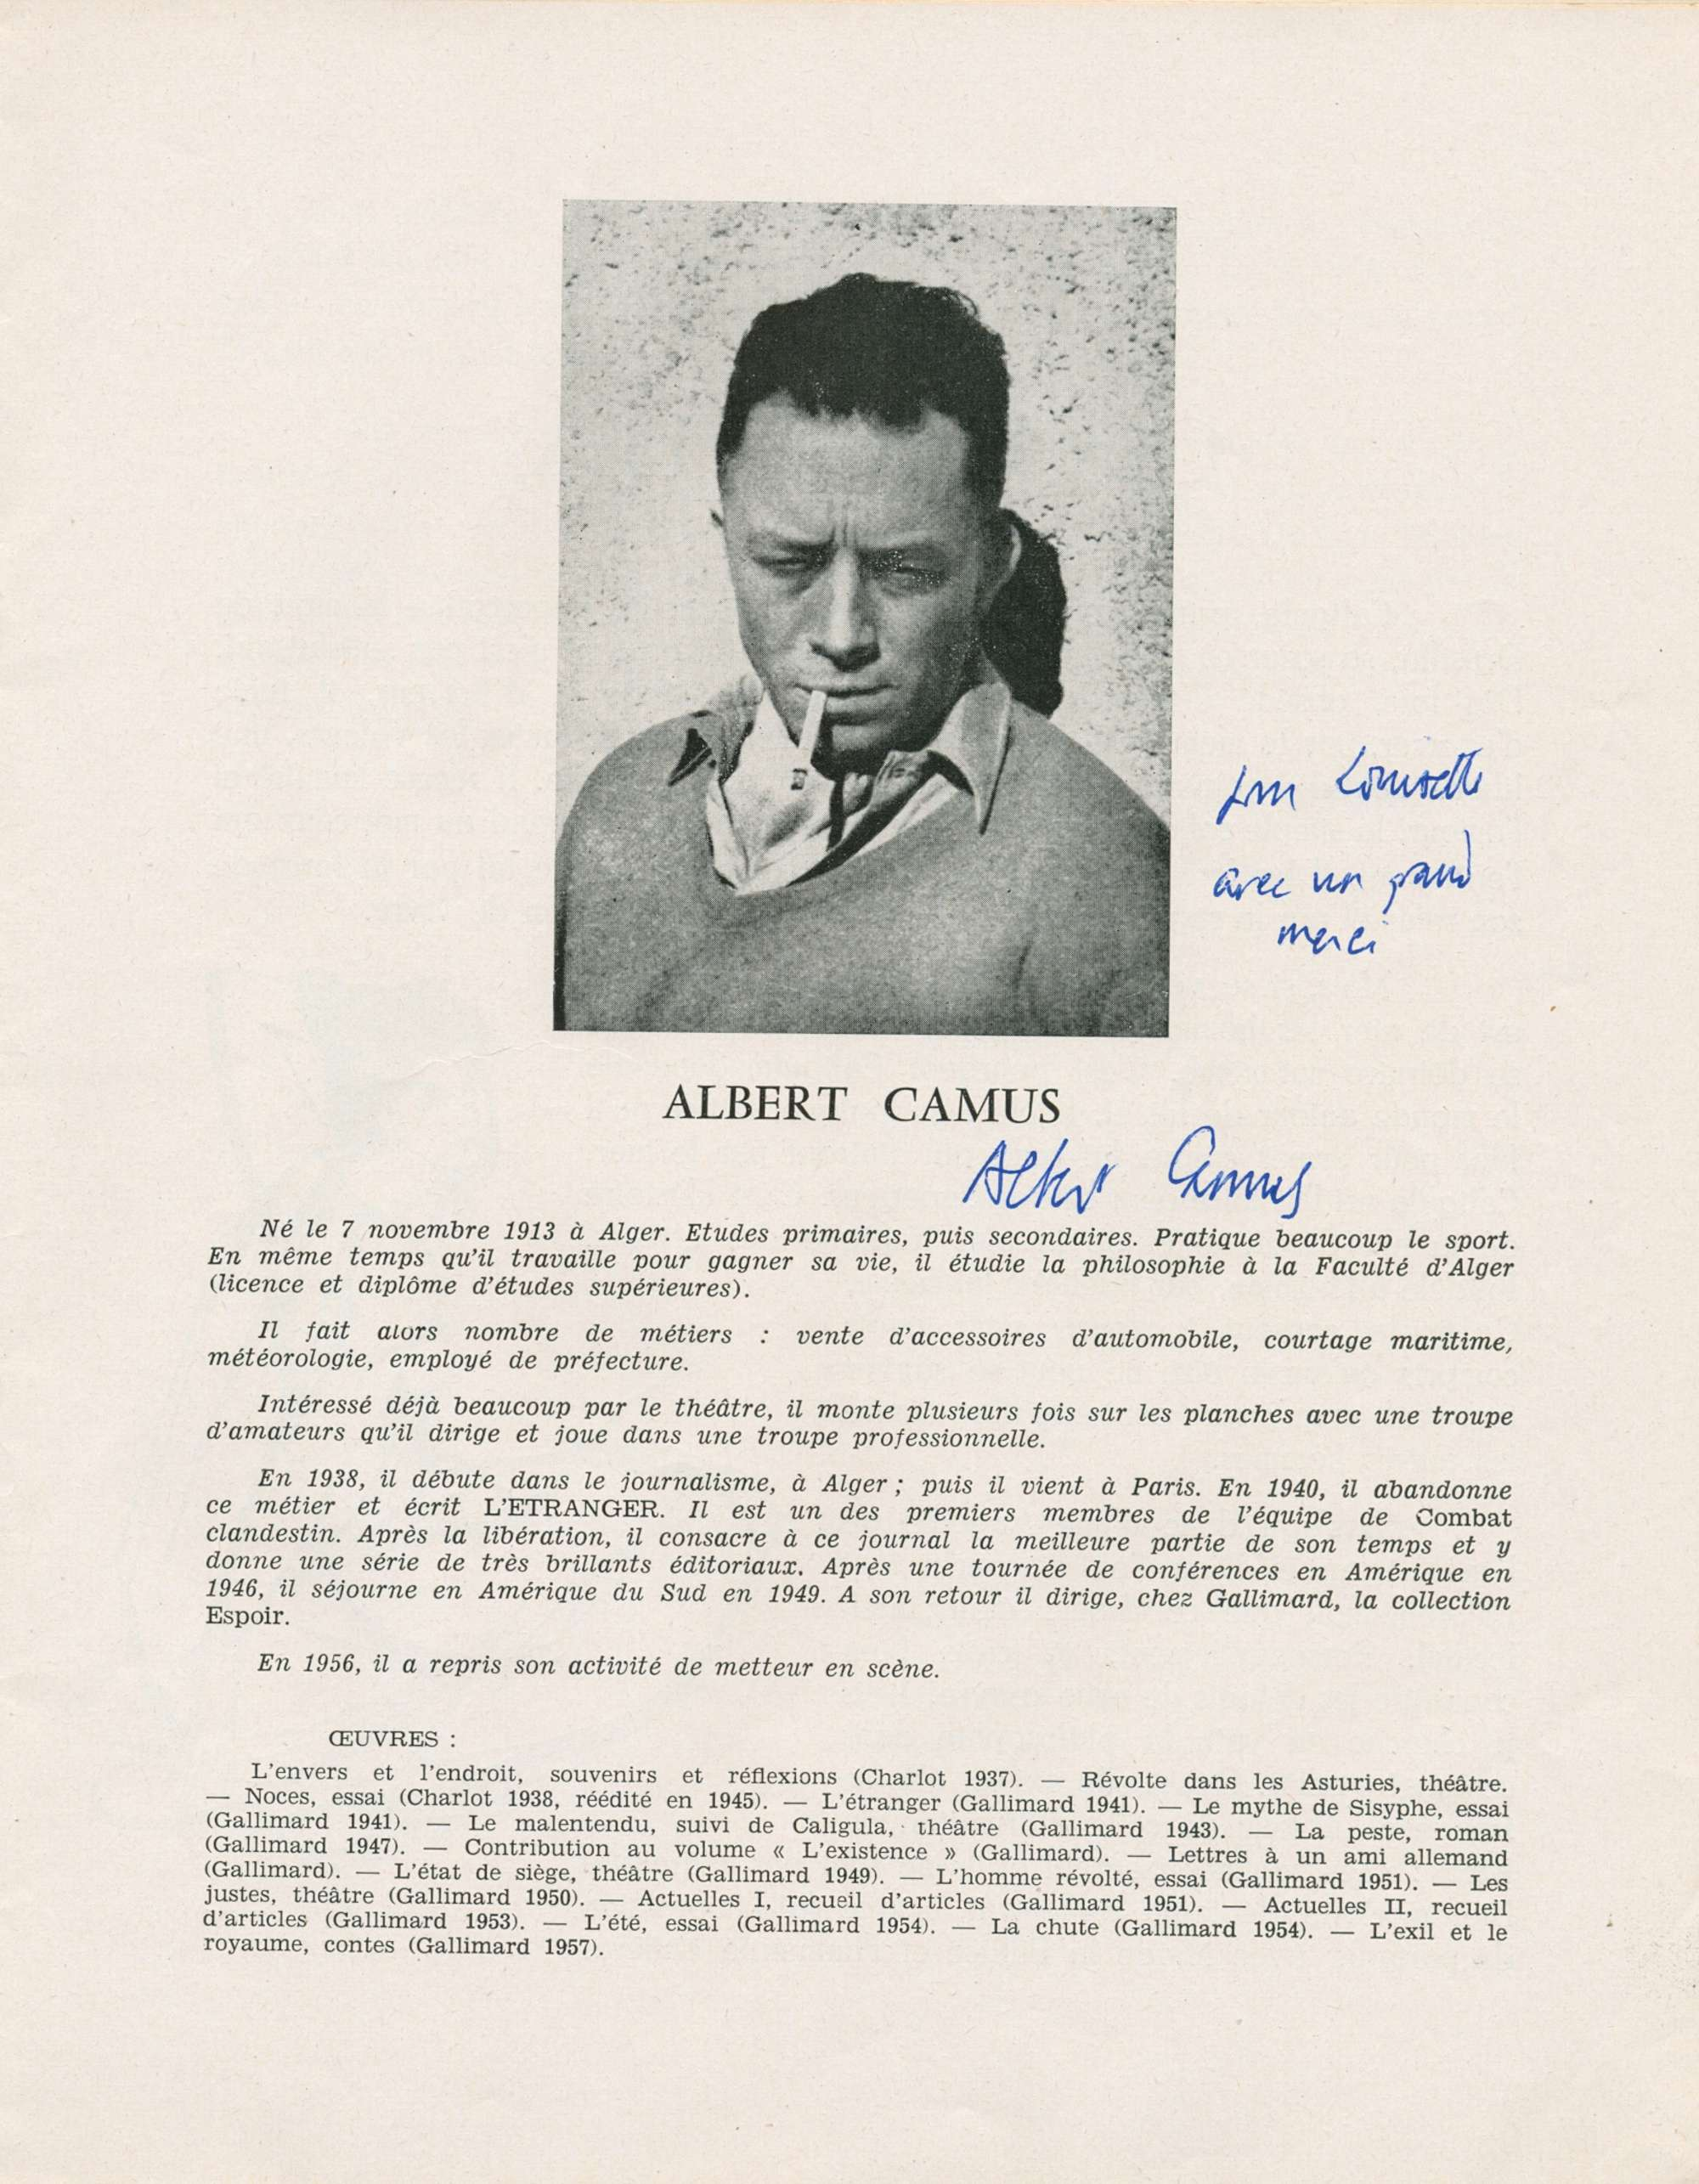 Nobel Prize Winner In Literature 1957 Signed And Inscribed 4to Page Angers Being An Inside Of The VI Festival Dramatic Art Official